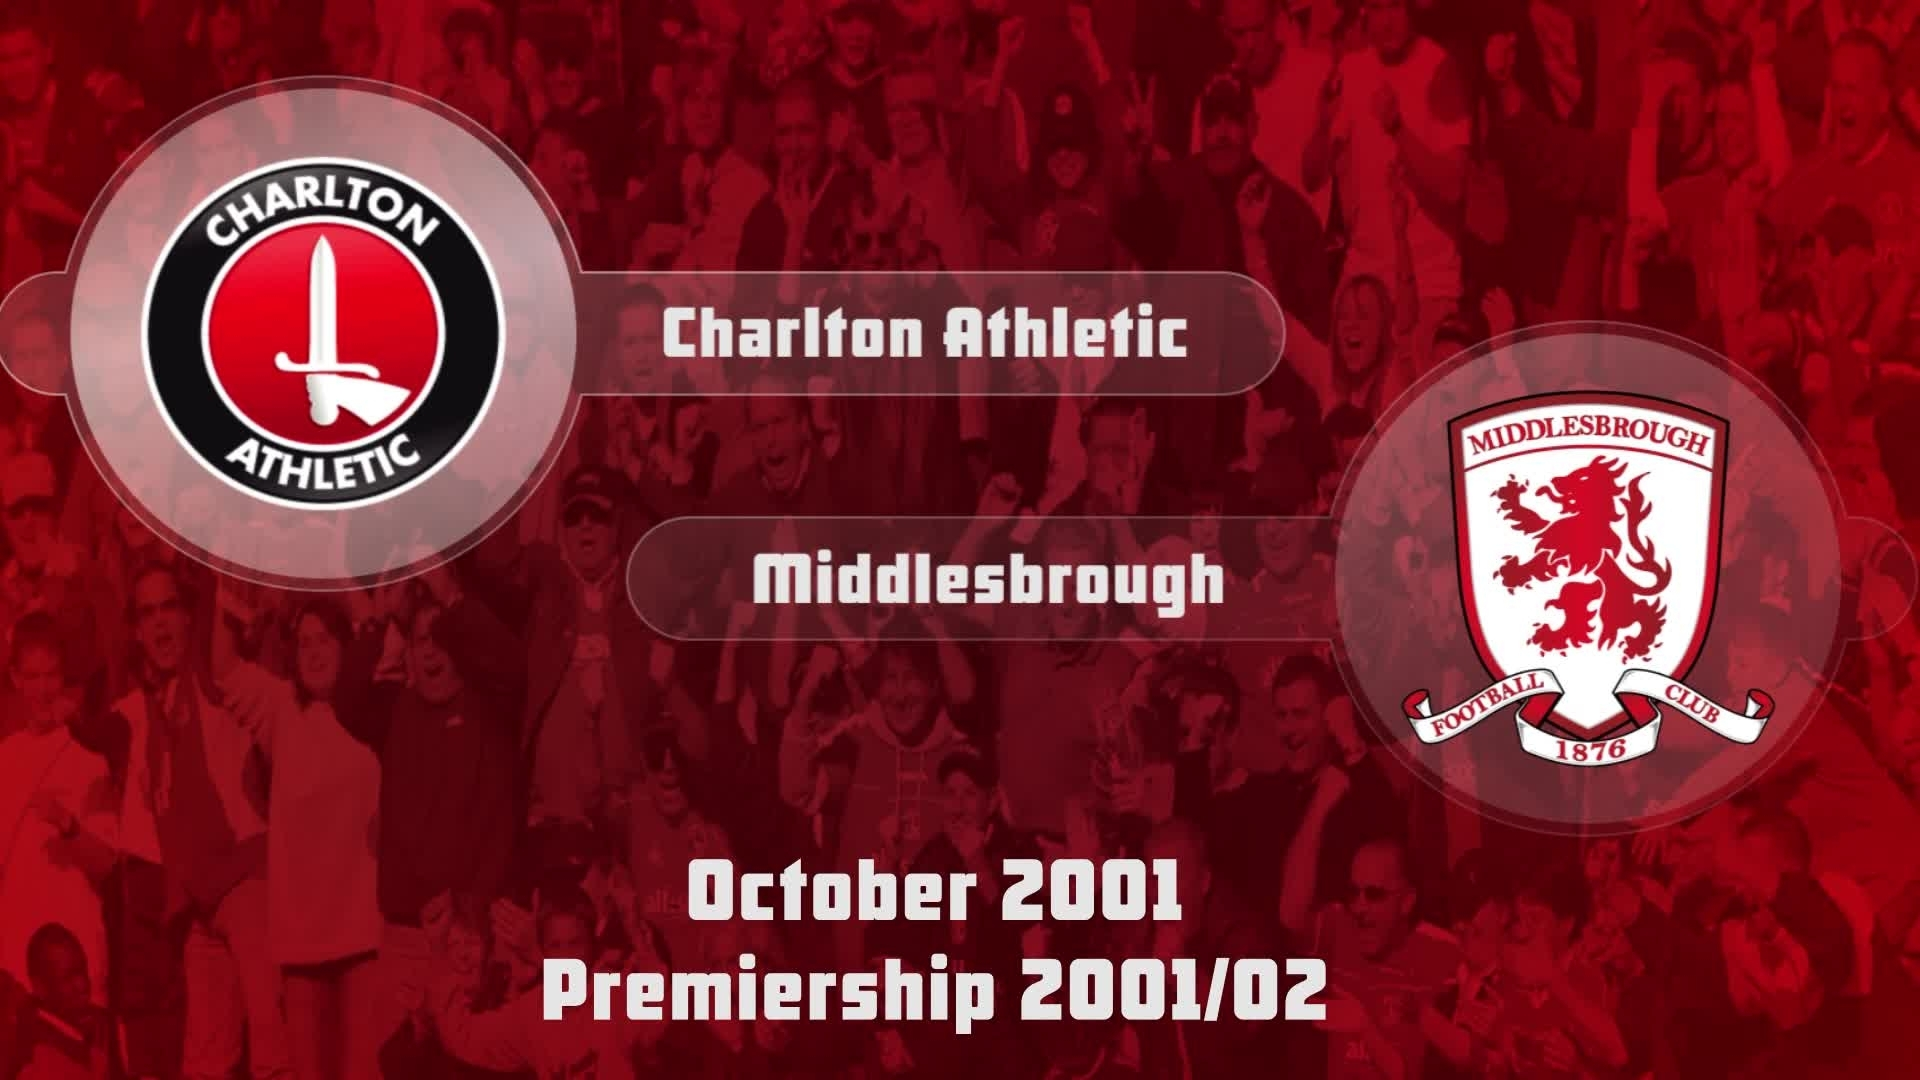 09 HIGHLIGHTS | Charlton 0 Middlesbrough 0 (Oct 2001)